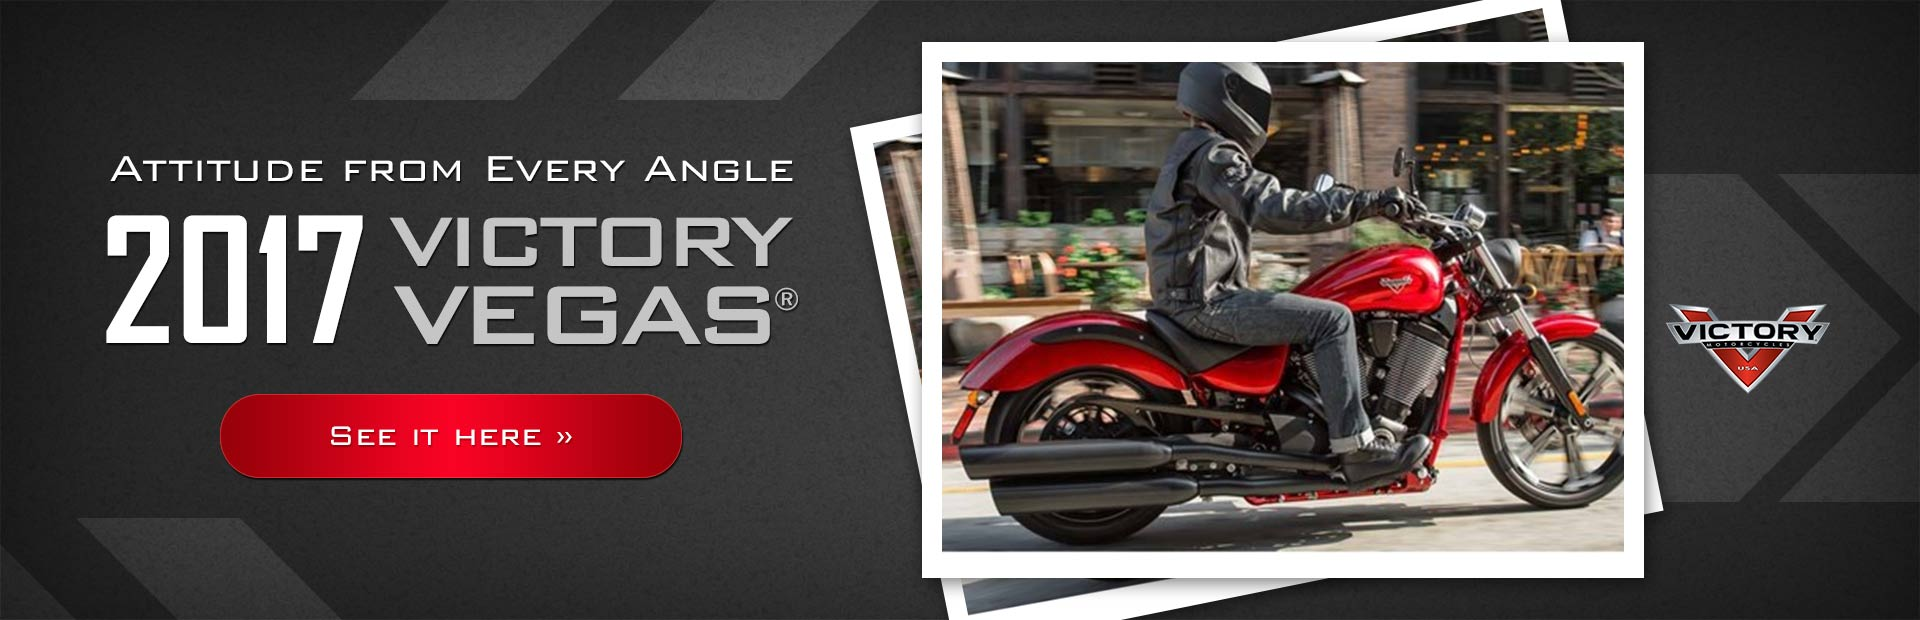 2017 Victory Vegas®: Click here to view the model.